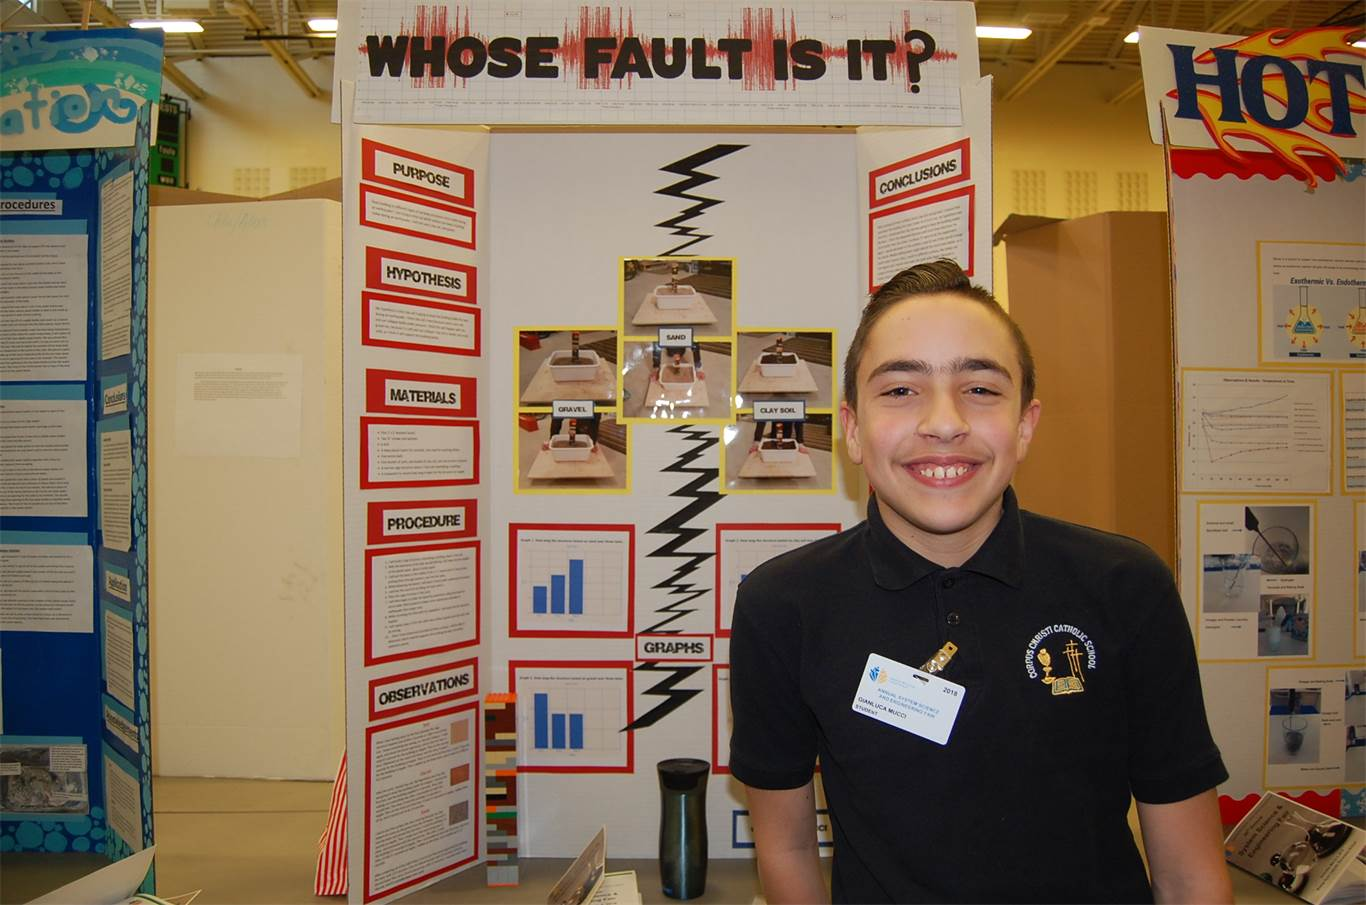 Gianluca Mucci, a Grade 6 student at Corpus Christi Catholic Elementary School, tested different surfaces in a simulated earthquake to measure which protects best during a real earthquake.